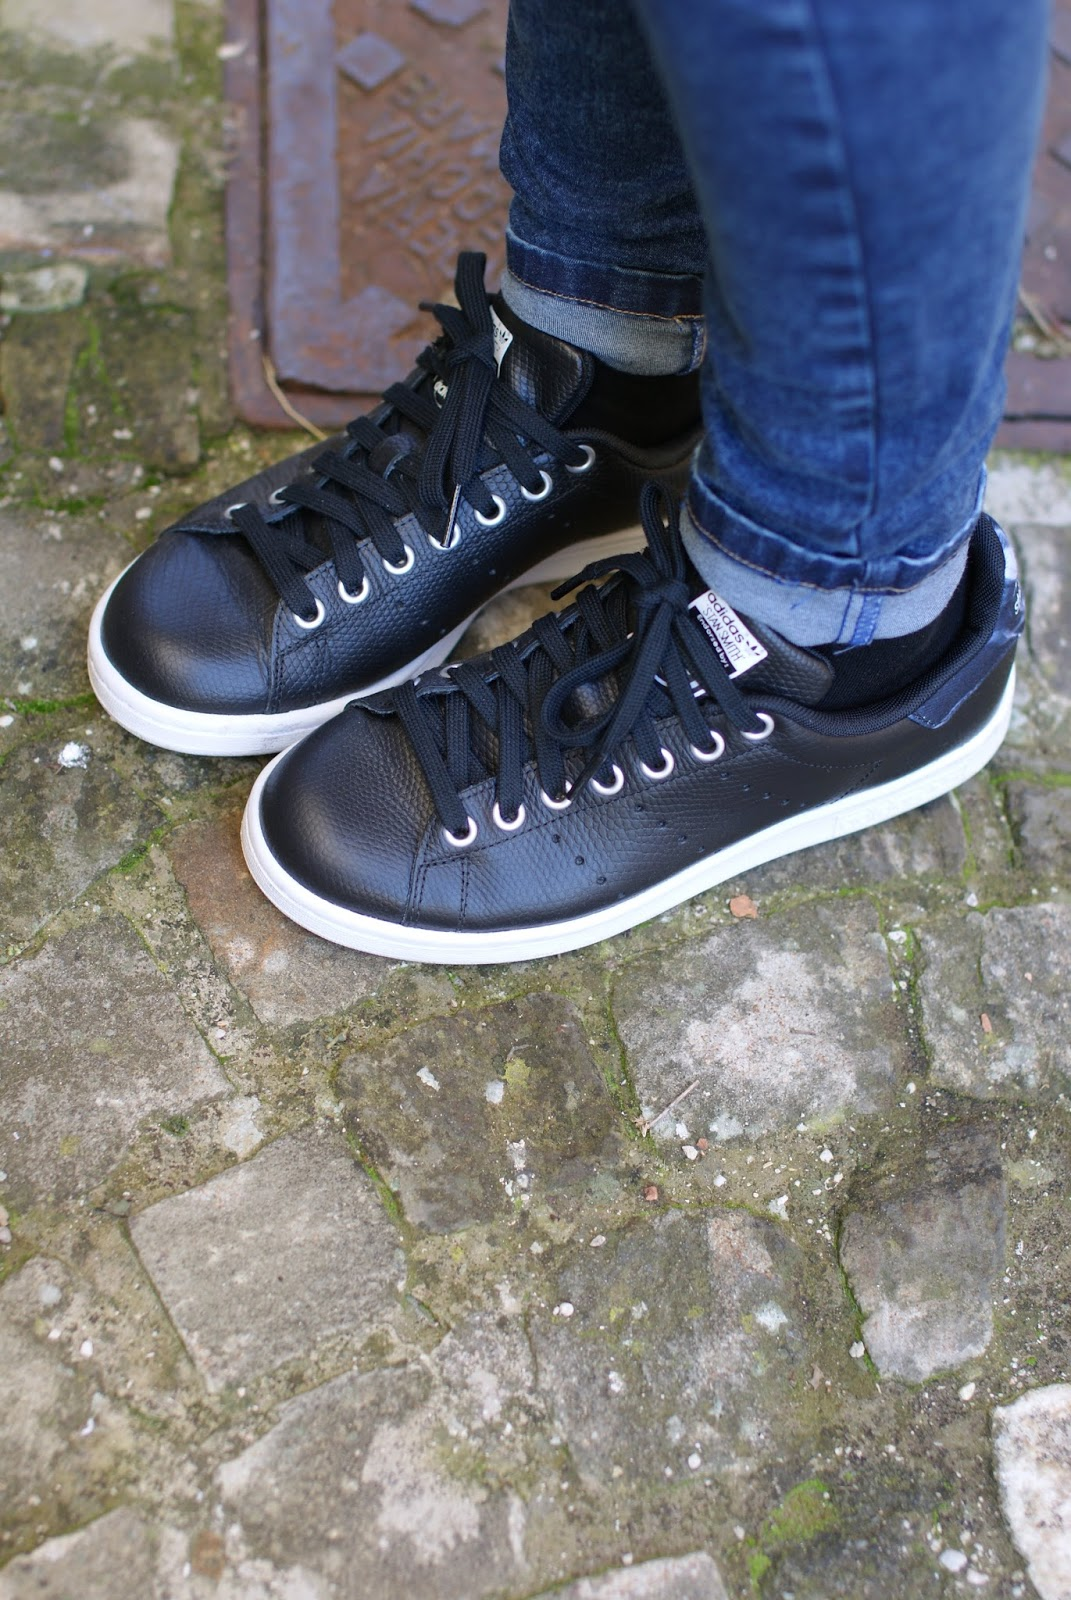 Black stan smith adidas sneakers on Fashion and Cookies fashion blog, fashion blogger casual style